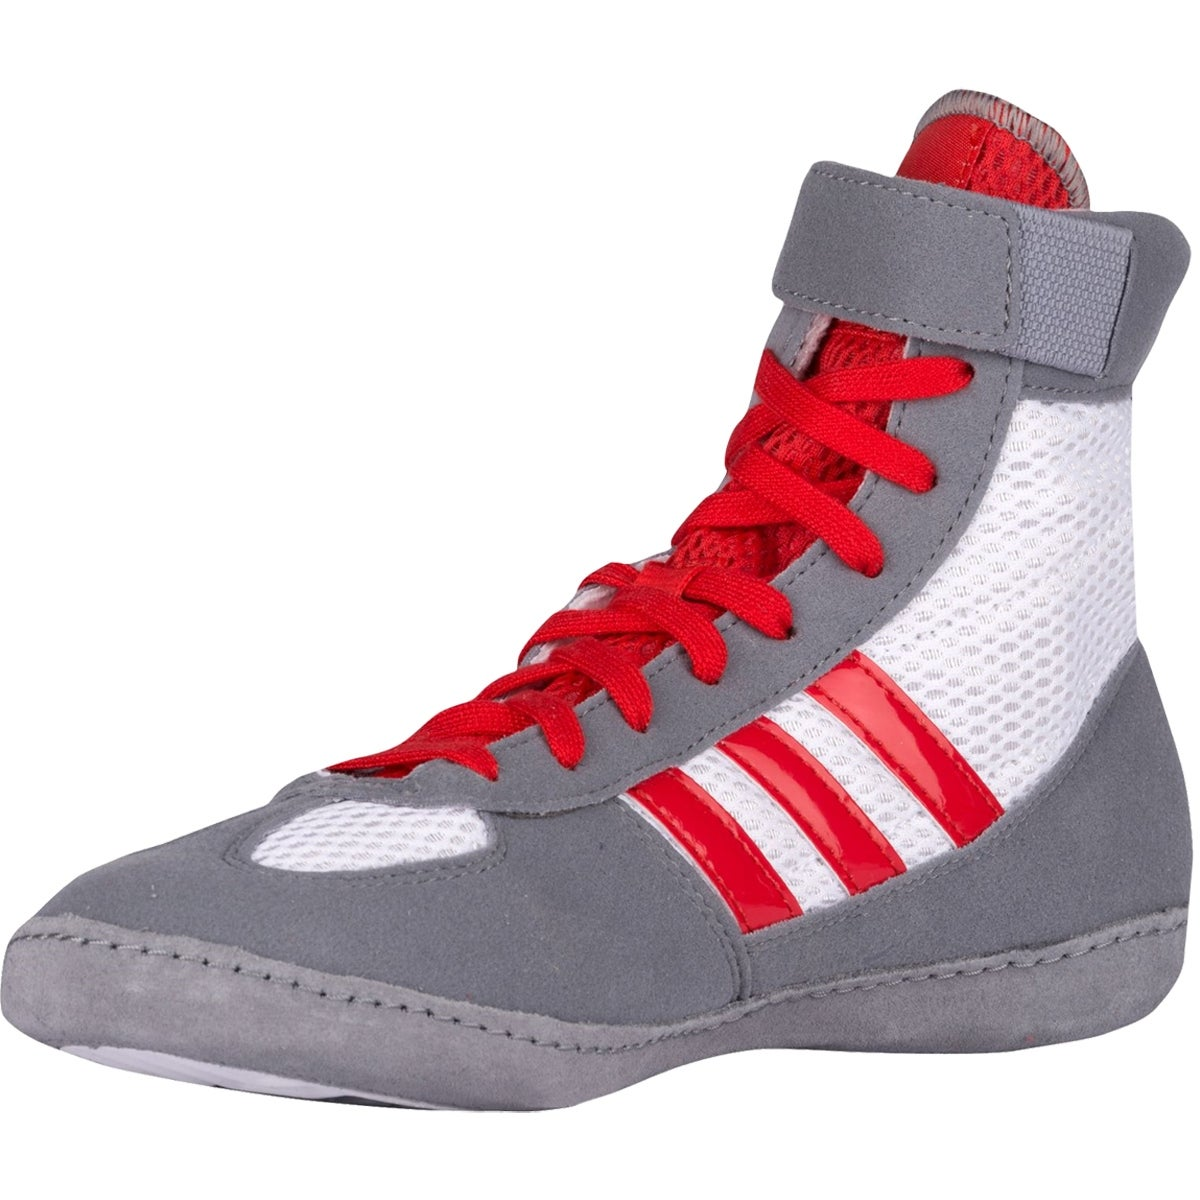 f5d3bb7313cb84 Shop Adidas Combat Speed 4 Youth Wrestling Shoes - White Red Gray - Free  Shipping Today - Overstock - 17847932